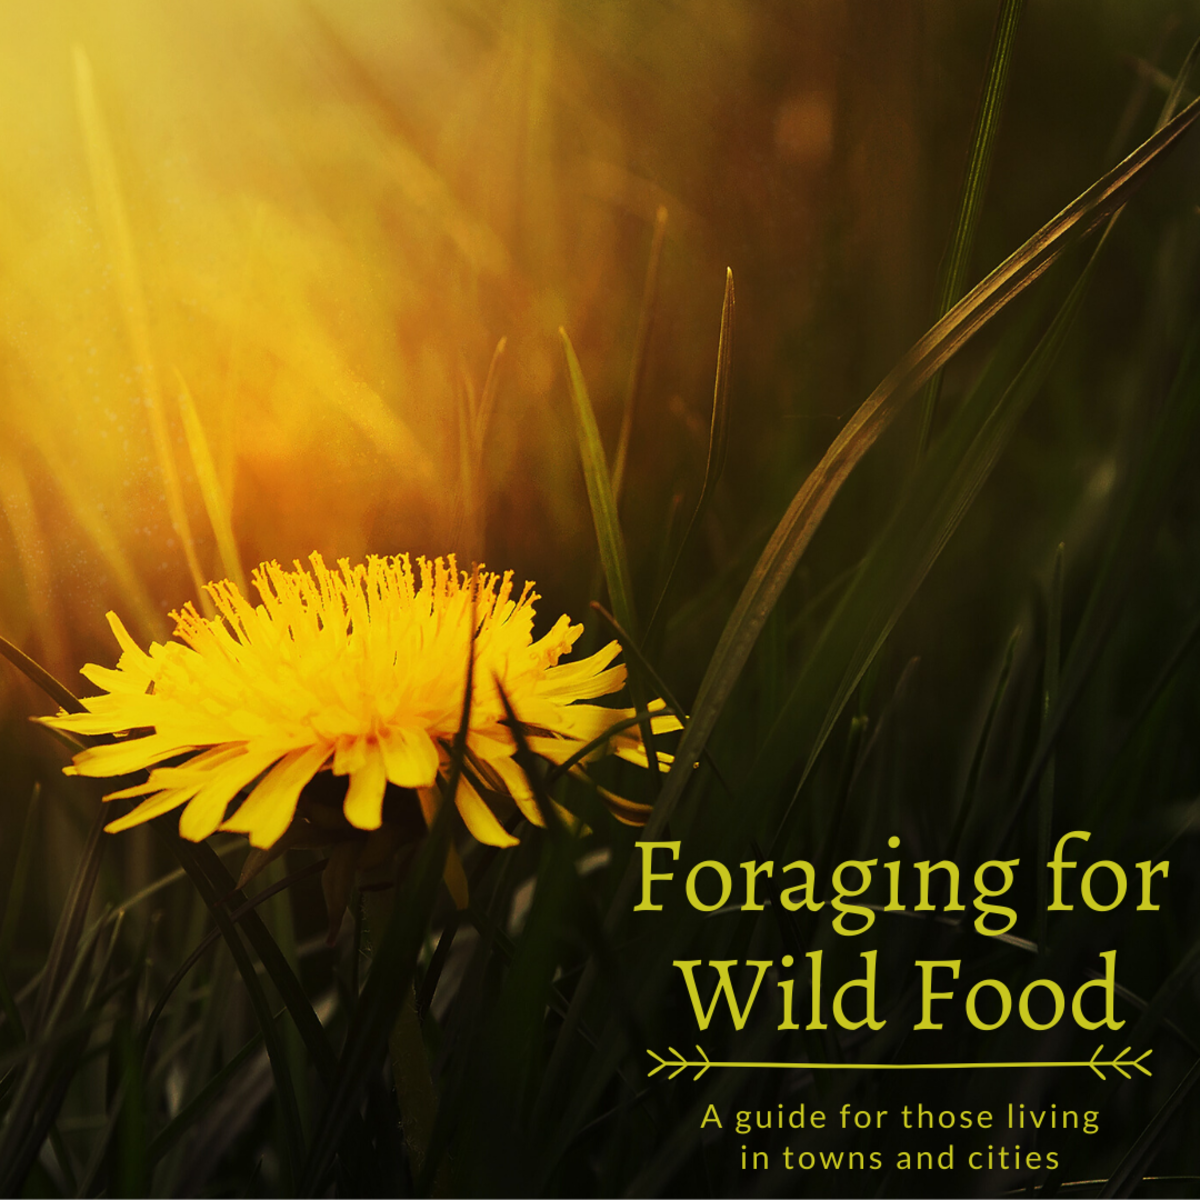 This guide will break down how to safely and respectfully forage for wild food, even if you live in a town or city.